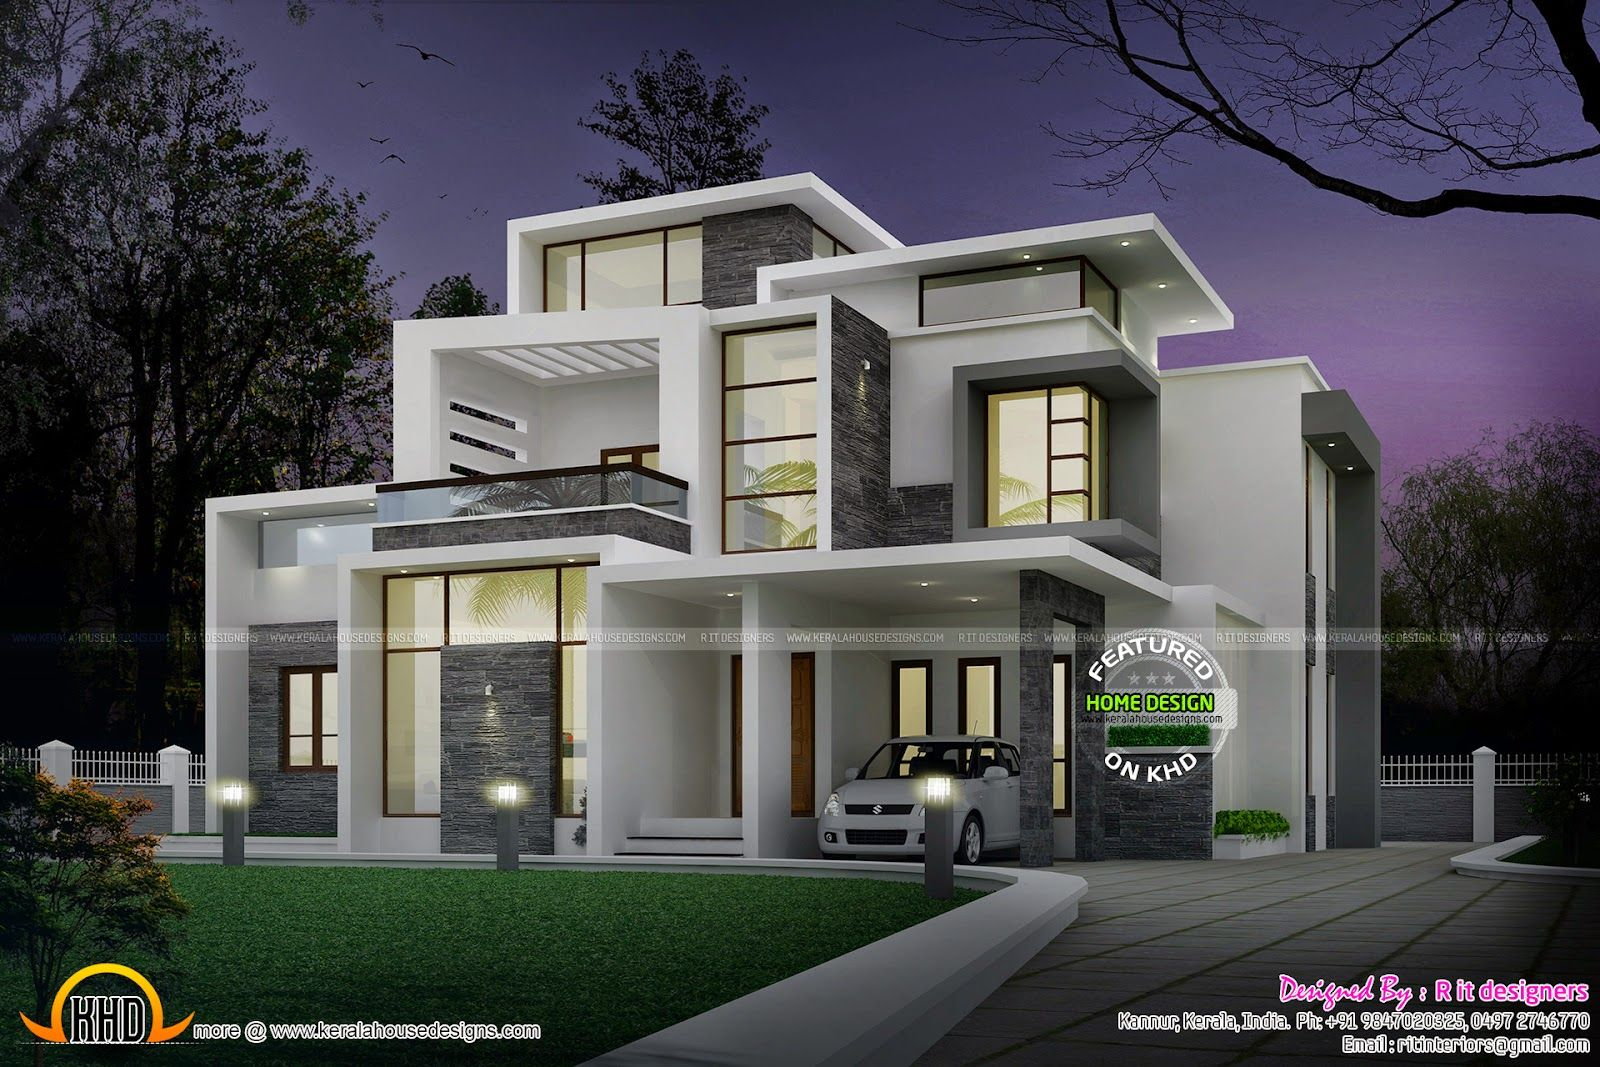 Grand contemporary home design kerala home design and for Modern house plans and designs